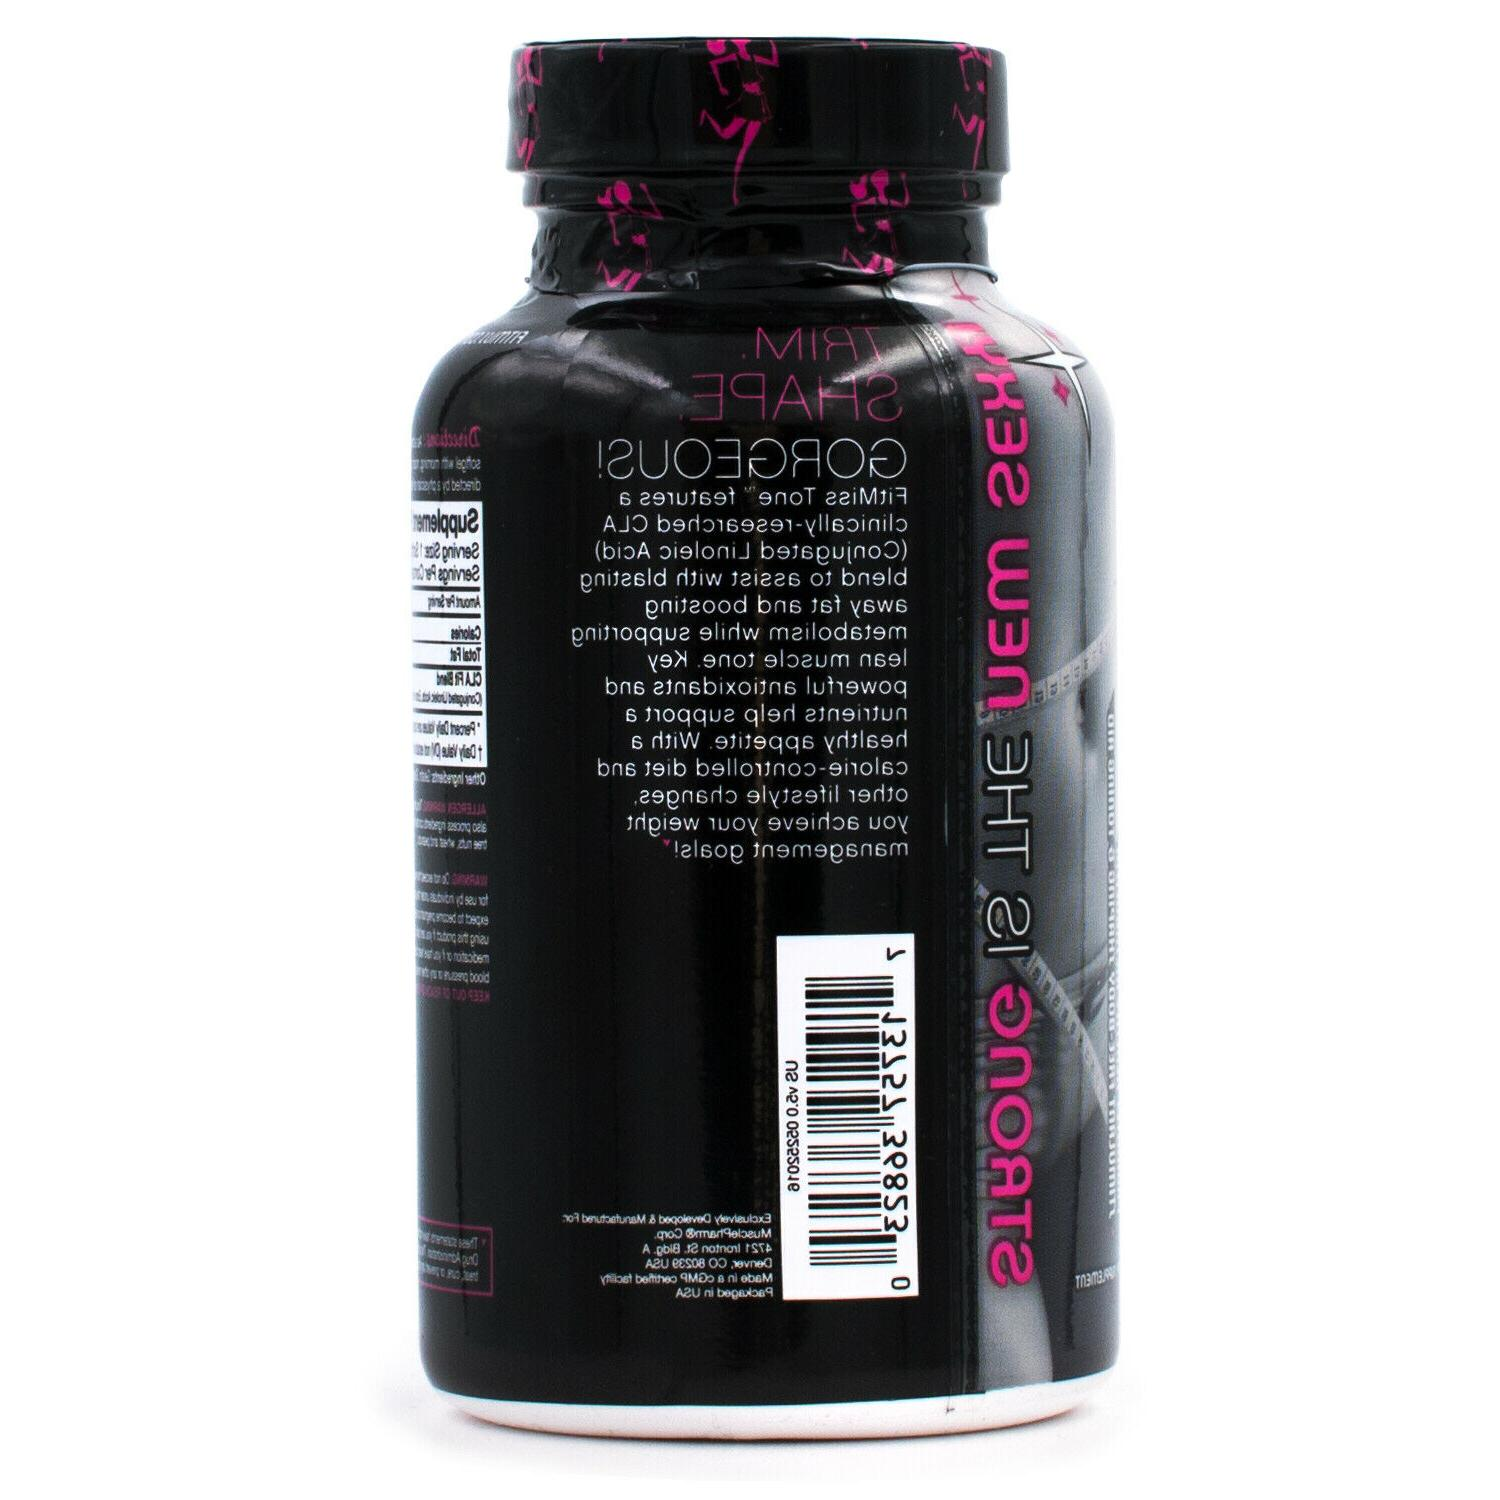 FitMiss Tone + Carb Loss for Women